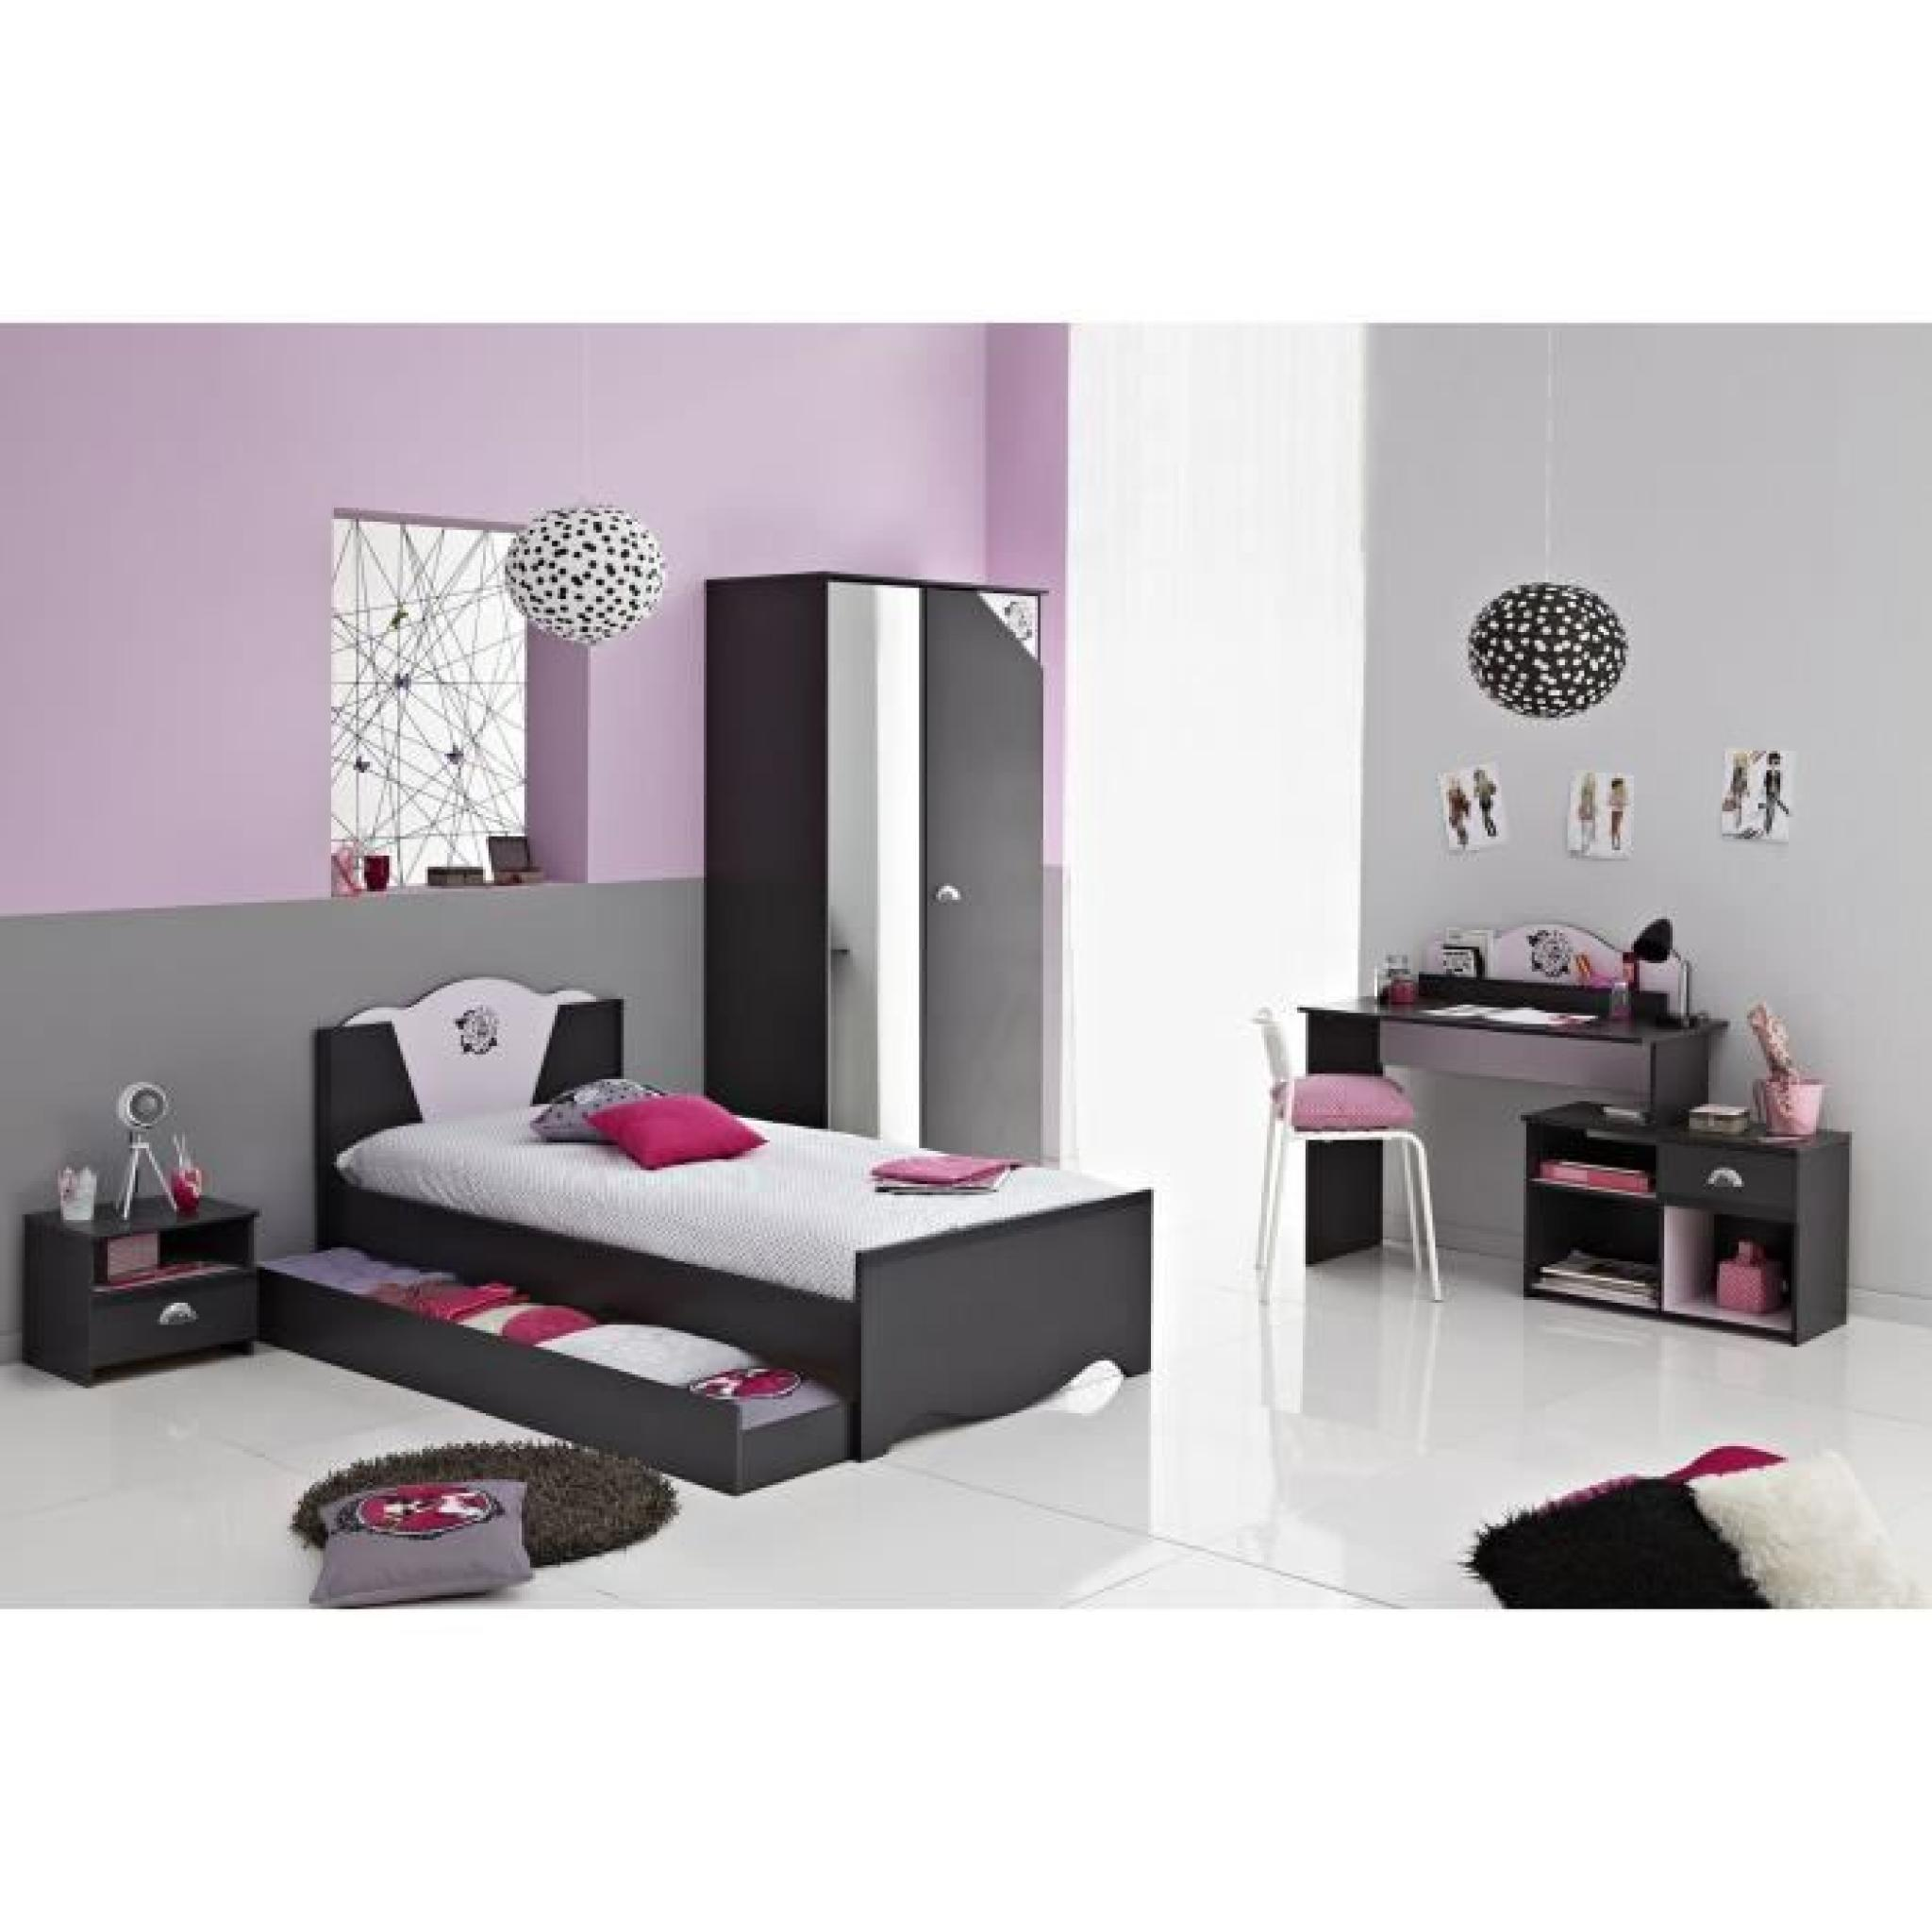 deco chambre rose pale et gris. Black Bedroom Furniture Sets. Home Design Ideas